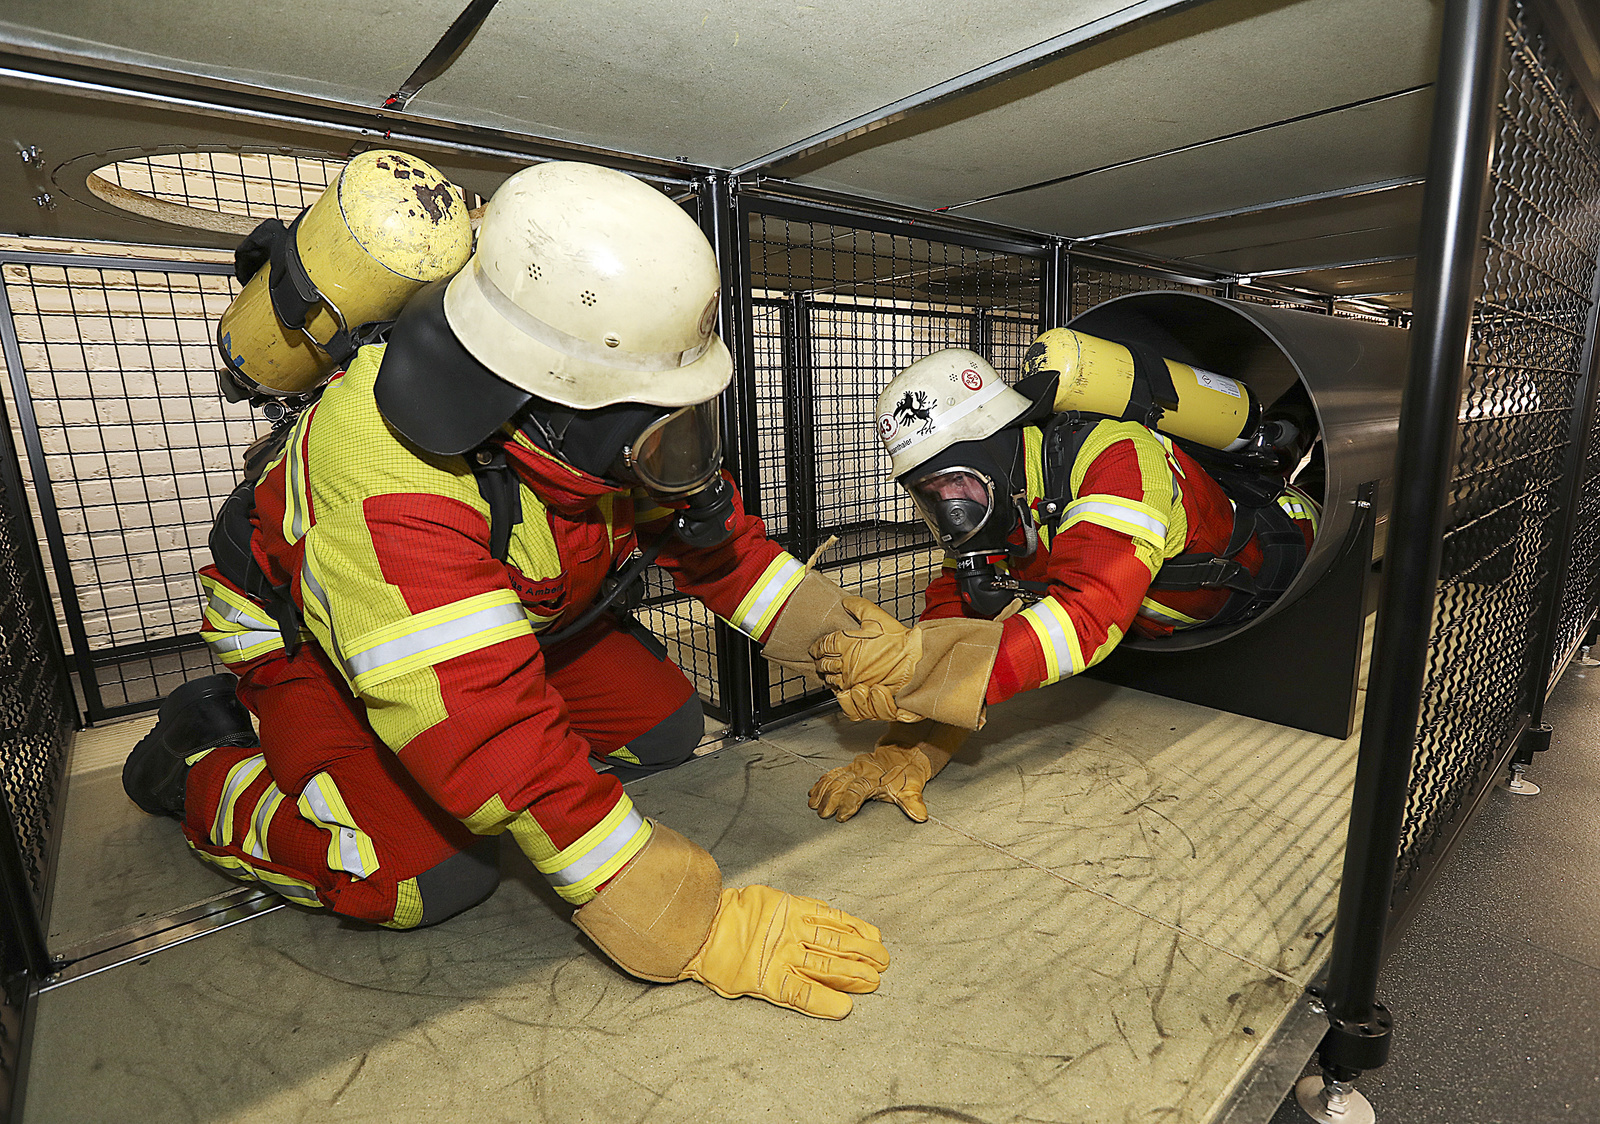 Fire service school: regular training with respiratory protection equipment